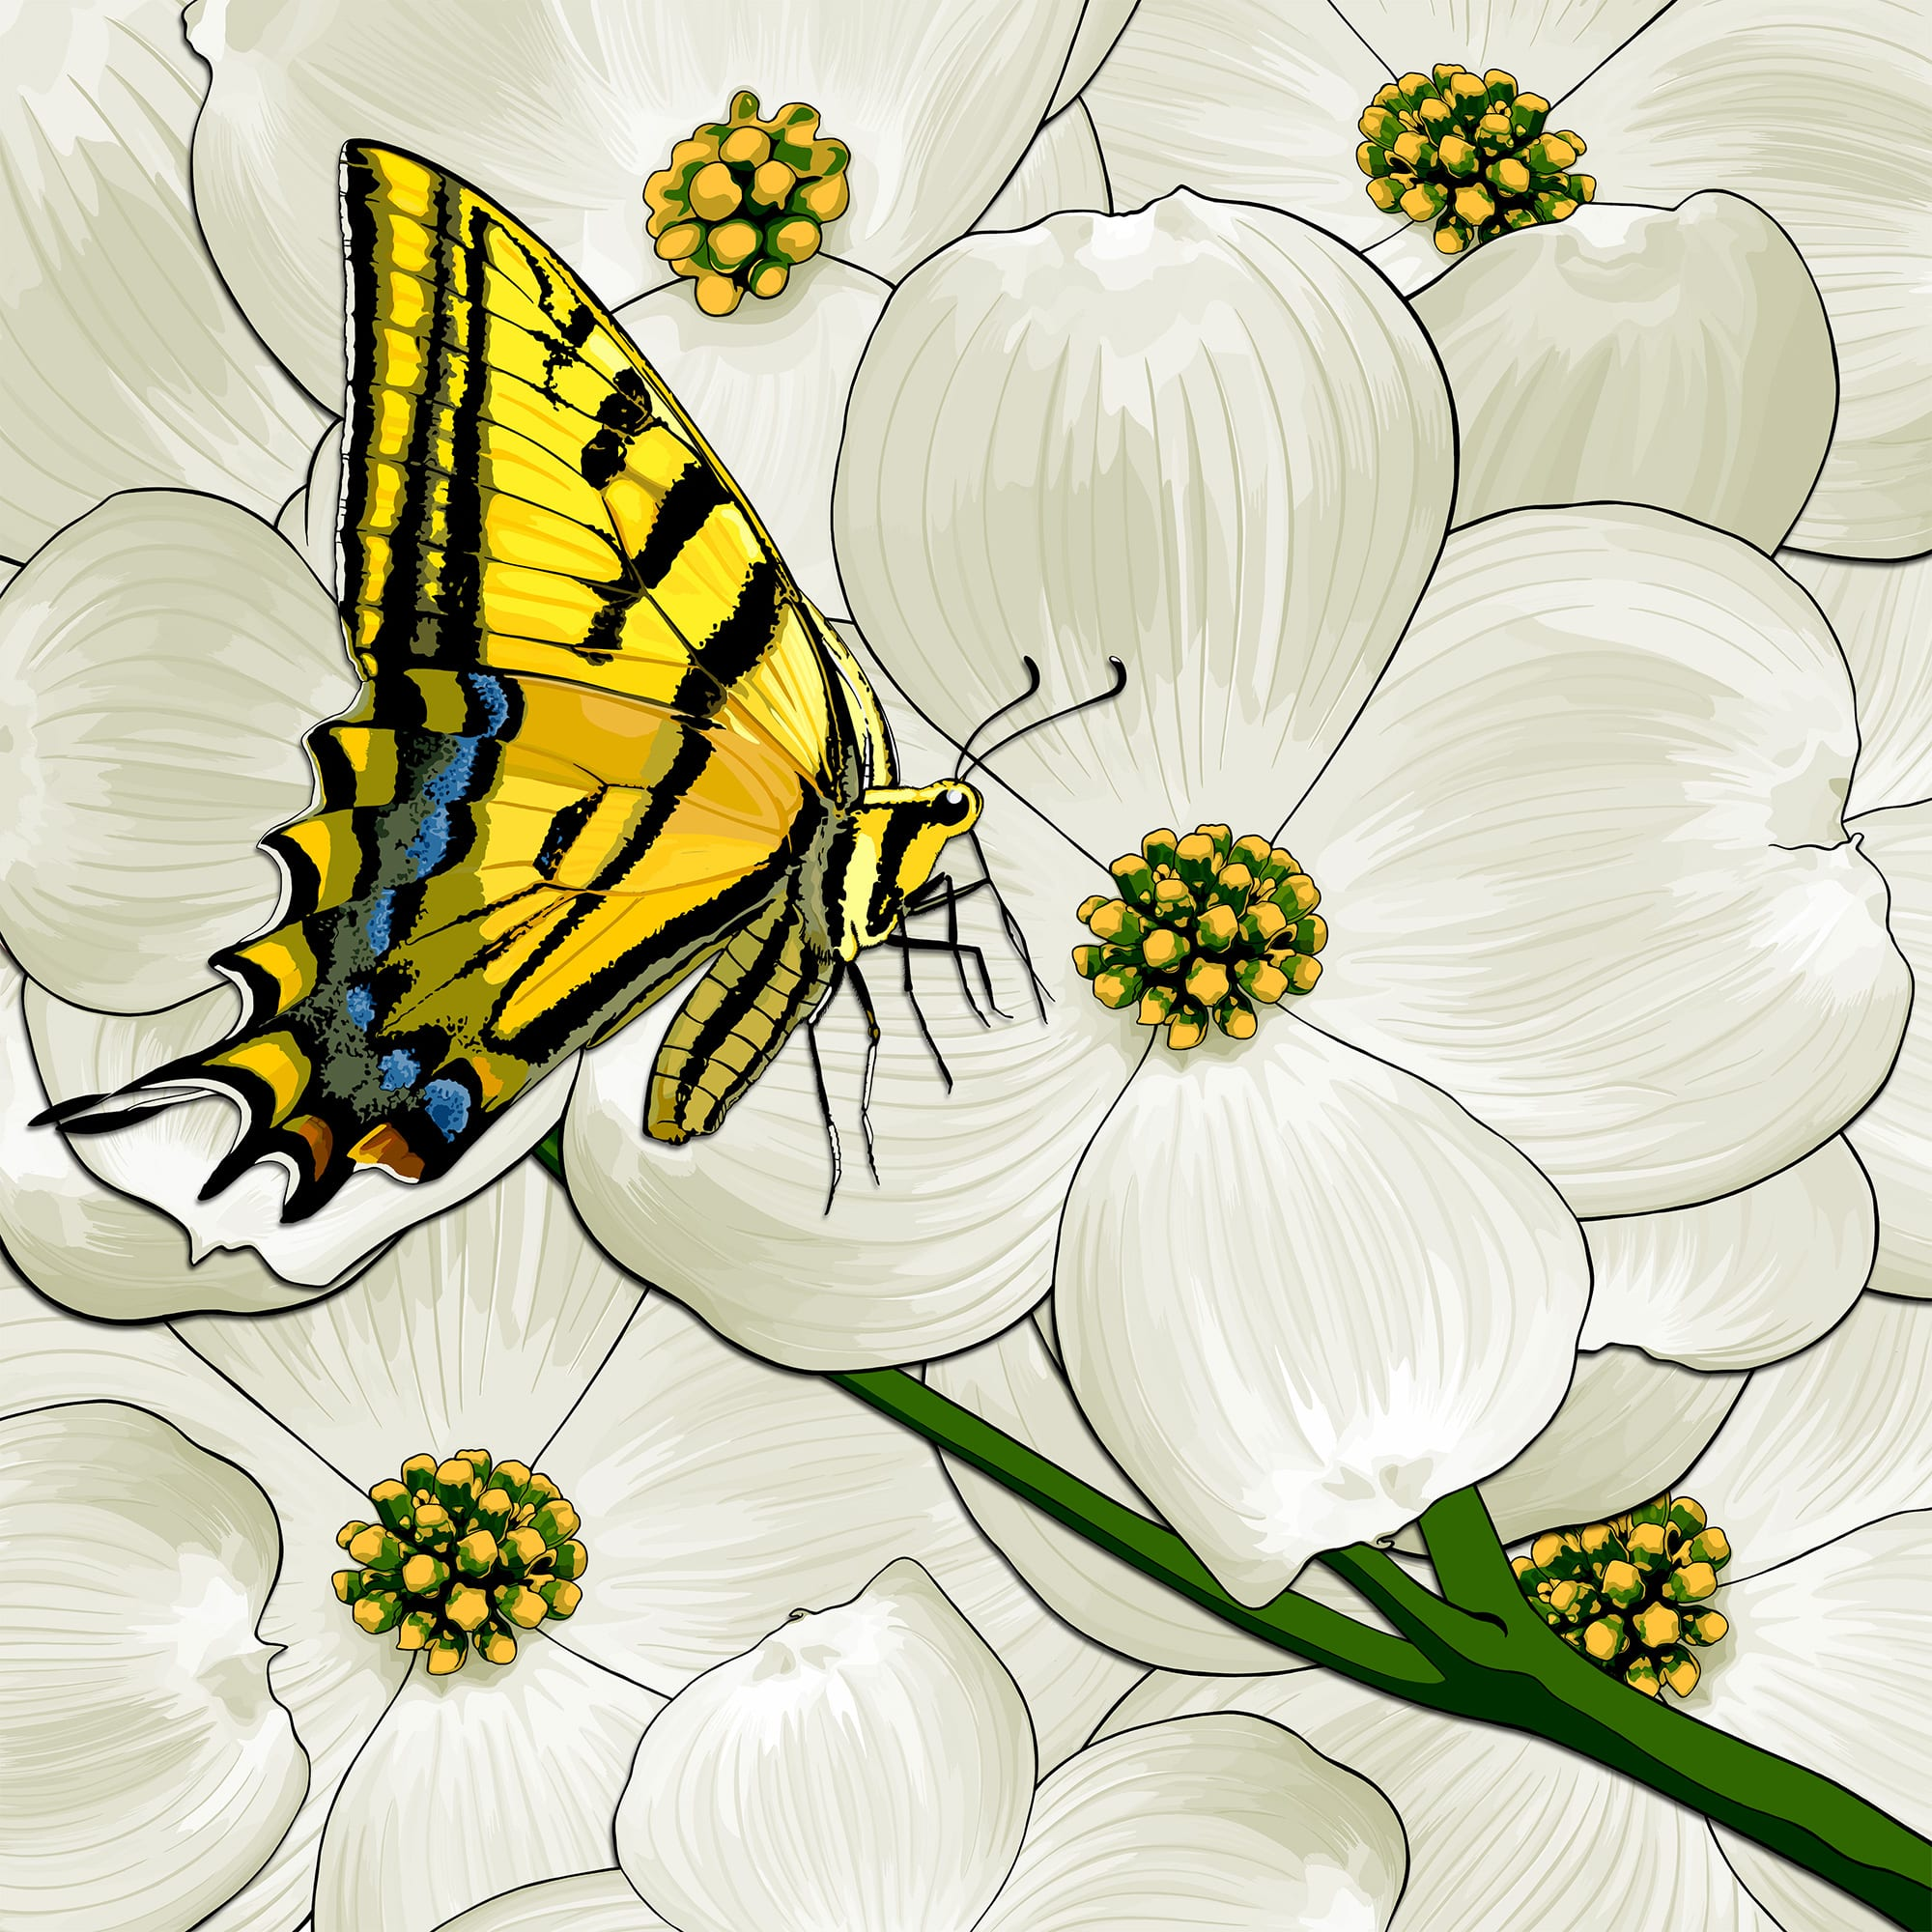 Virginia: Dogwoods + Tiger Swallowtail Butterfly